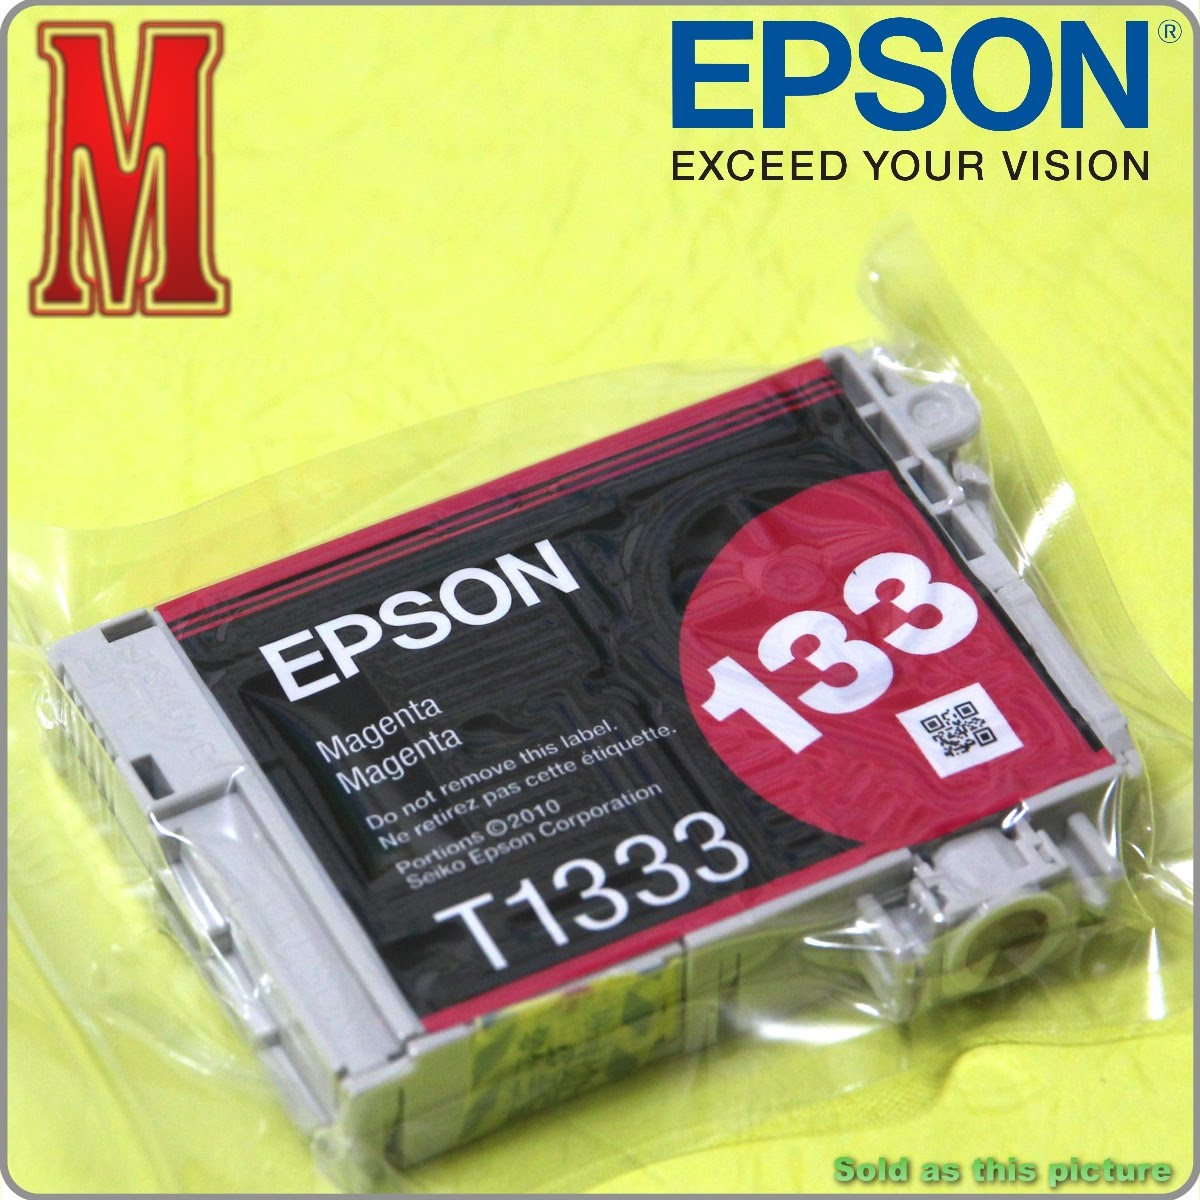 epsom black dating site Exceptional deals on epson t1285 (fox) ink cartridges with  within the epson t1285 range include: t1281 black ink  ink cartridges whether as singles or as.